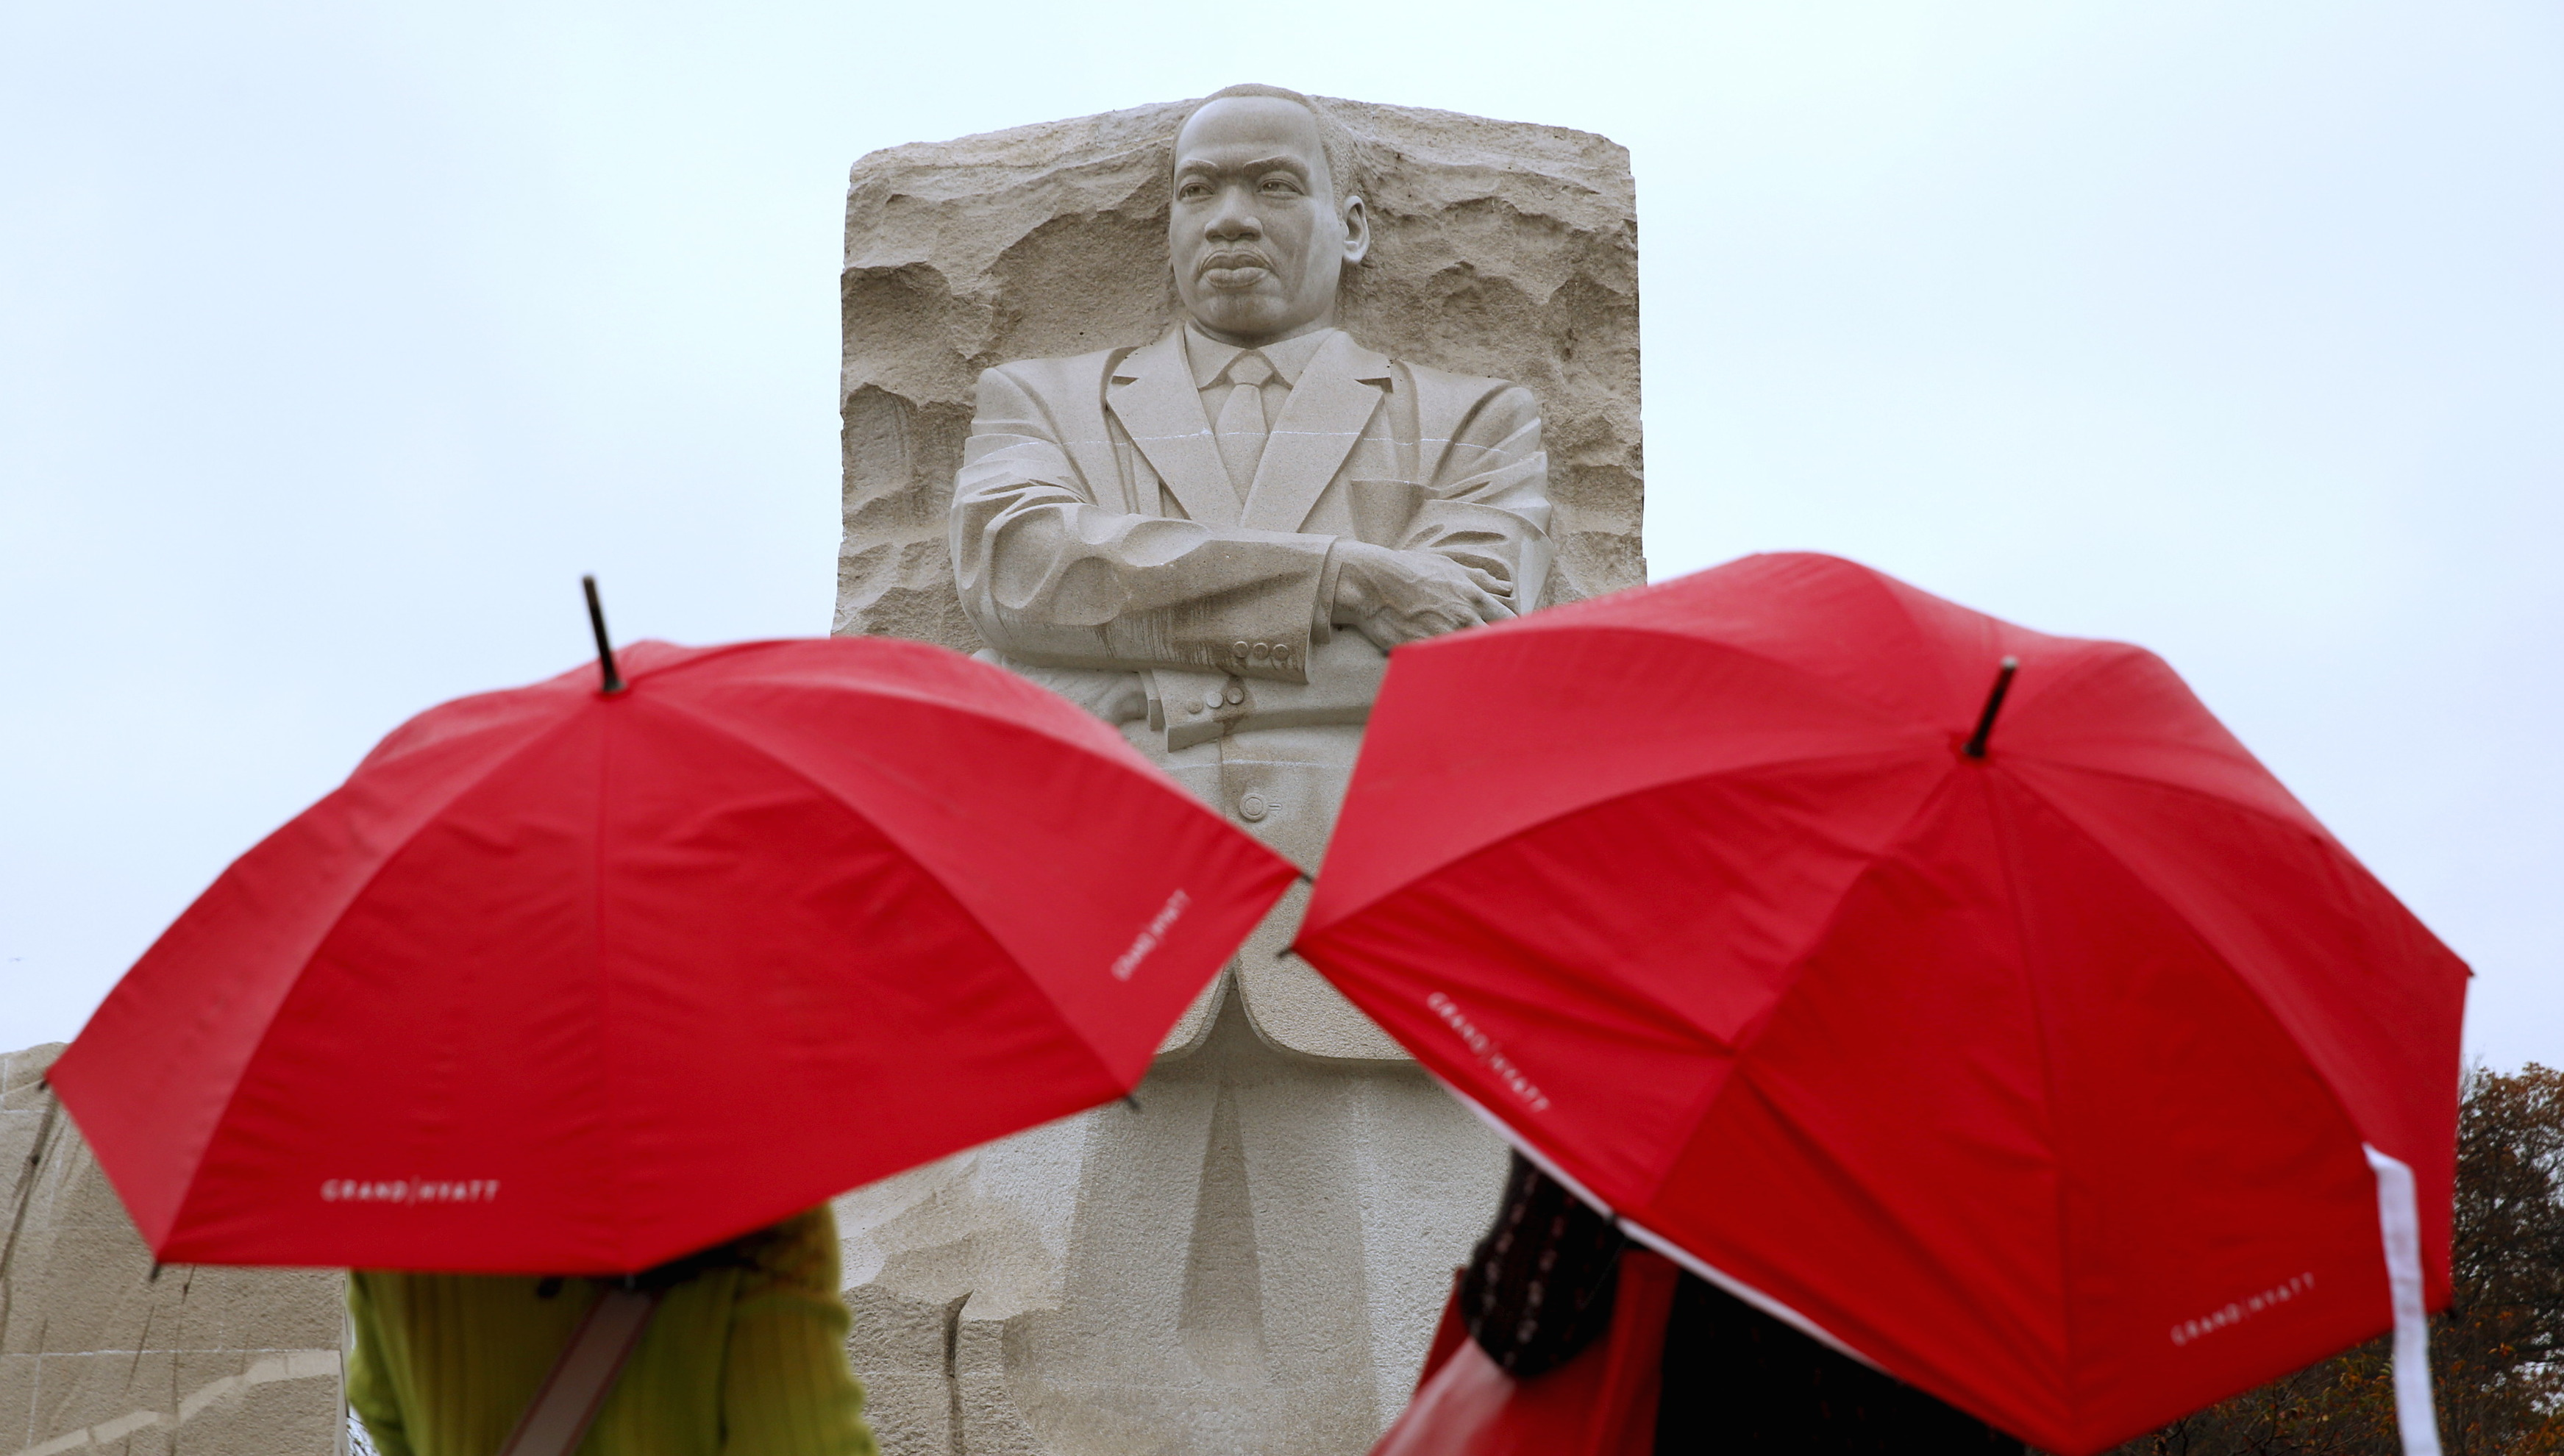 Sightseers tour the Martin Luther King Jr. Memorial in Washington